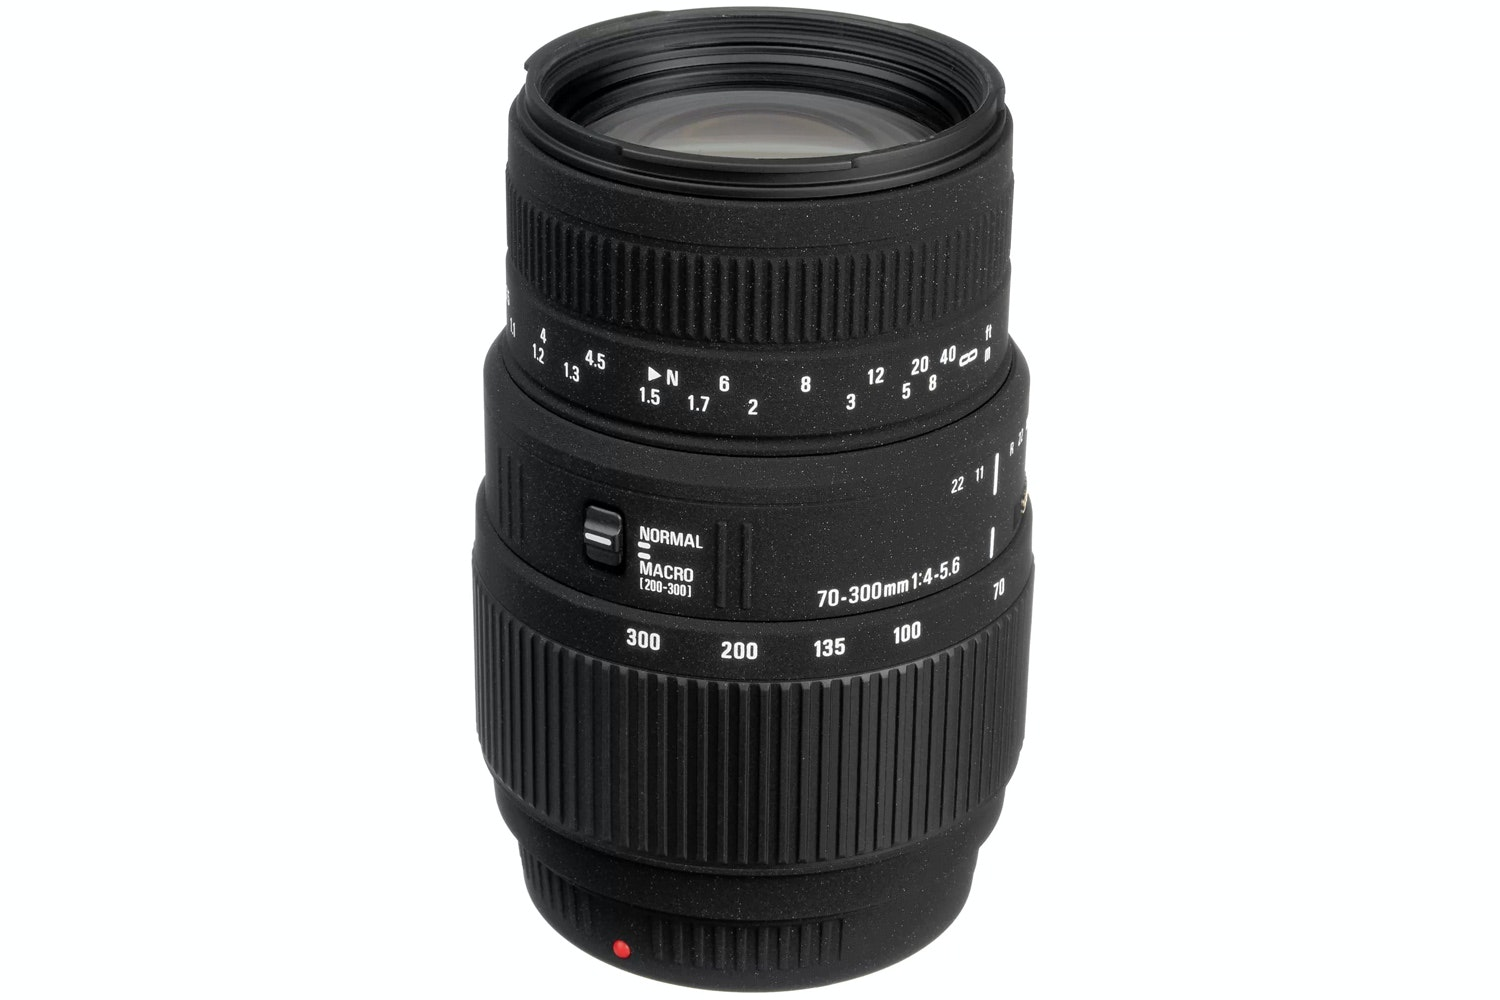 Sigma 70-300mm DG Macro lens for Sony A-mount